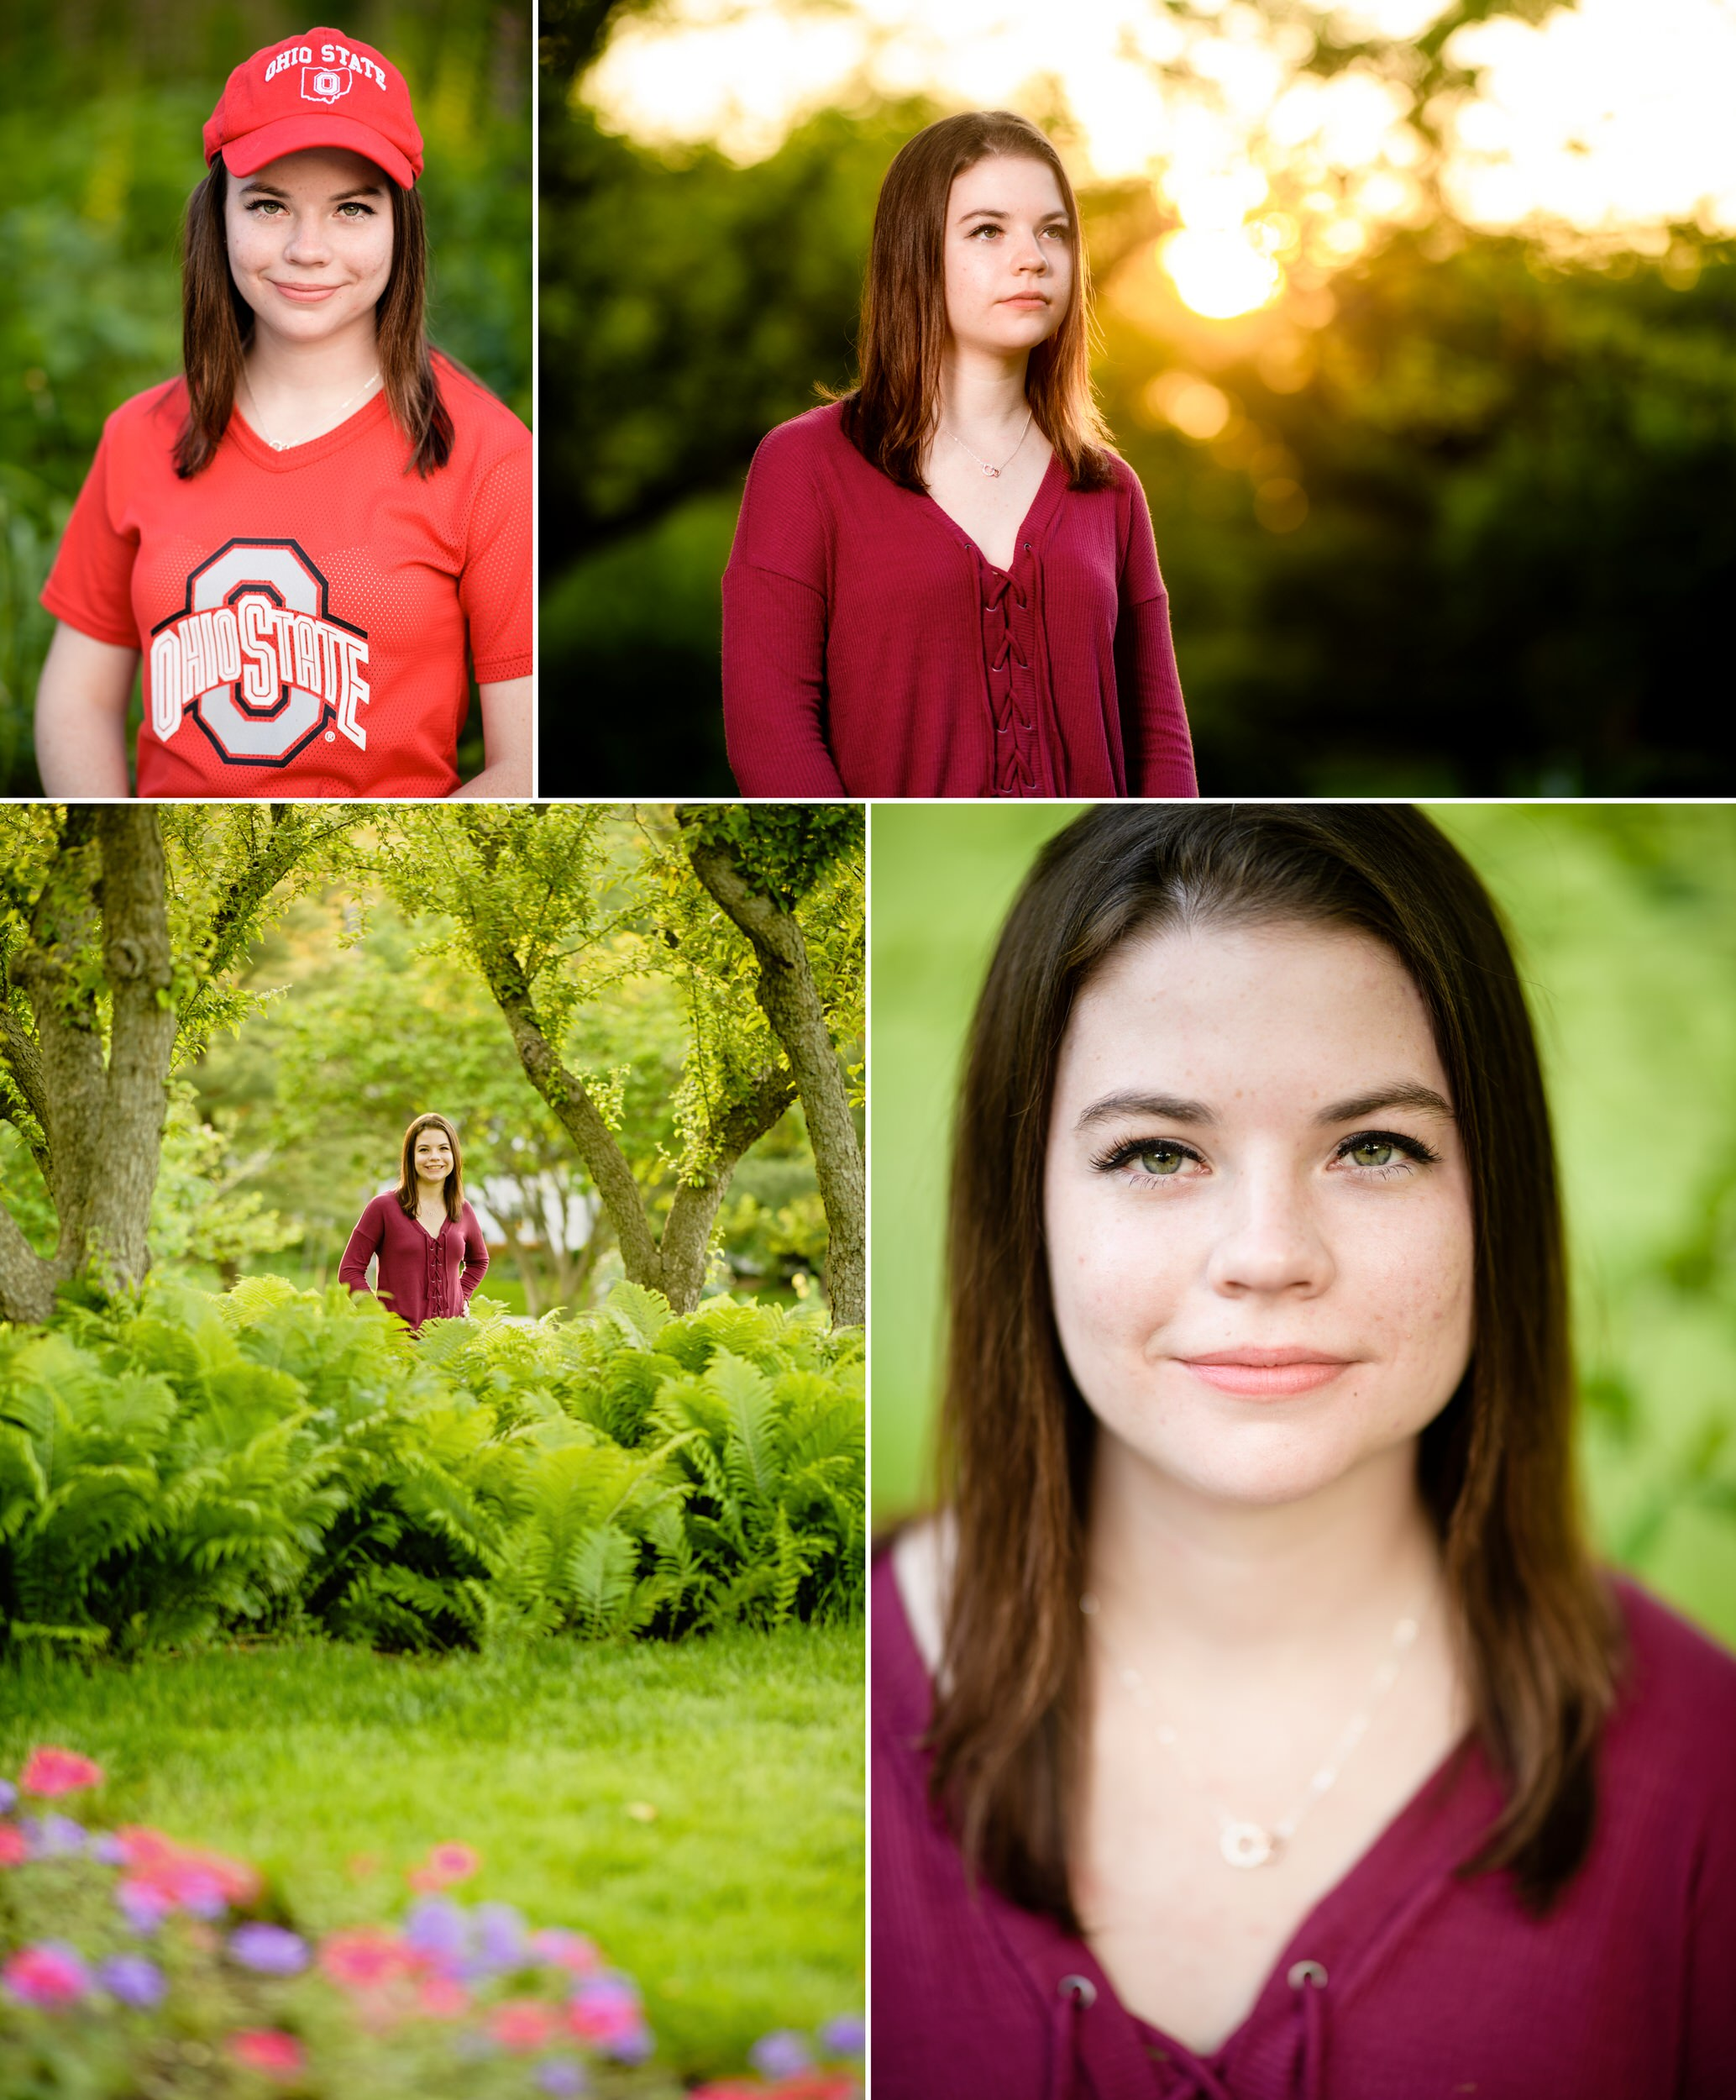 Senior photos at the beautiful Ogden Garden.